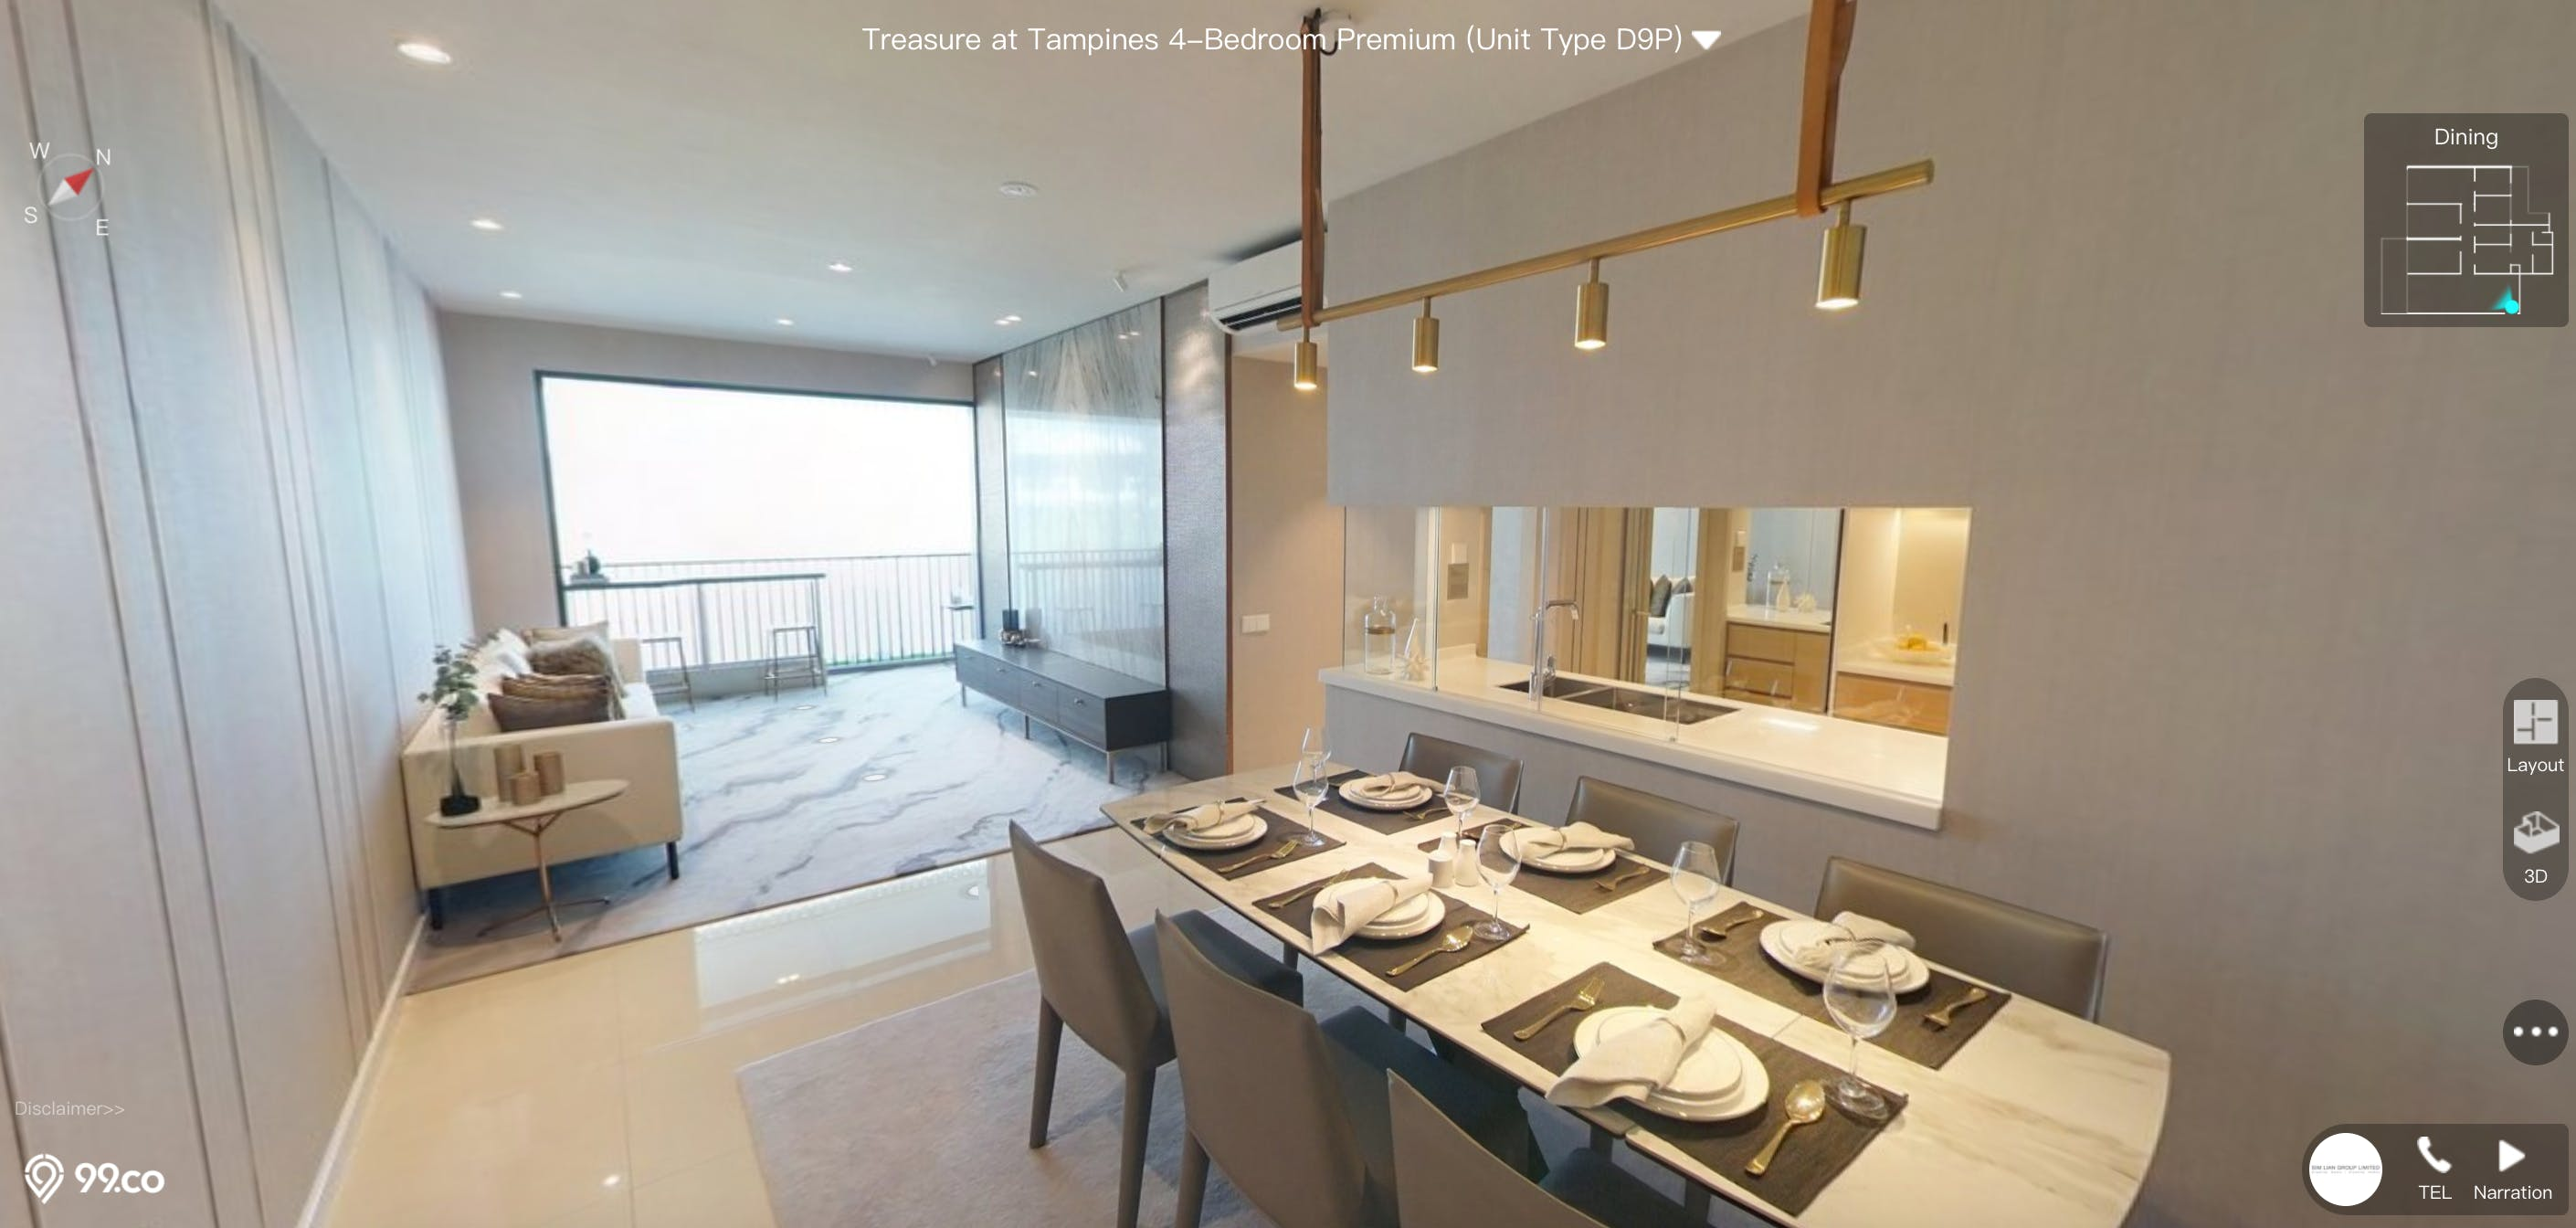 Treasure at Tampines 4 Bedroom Premium